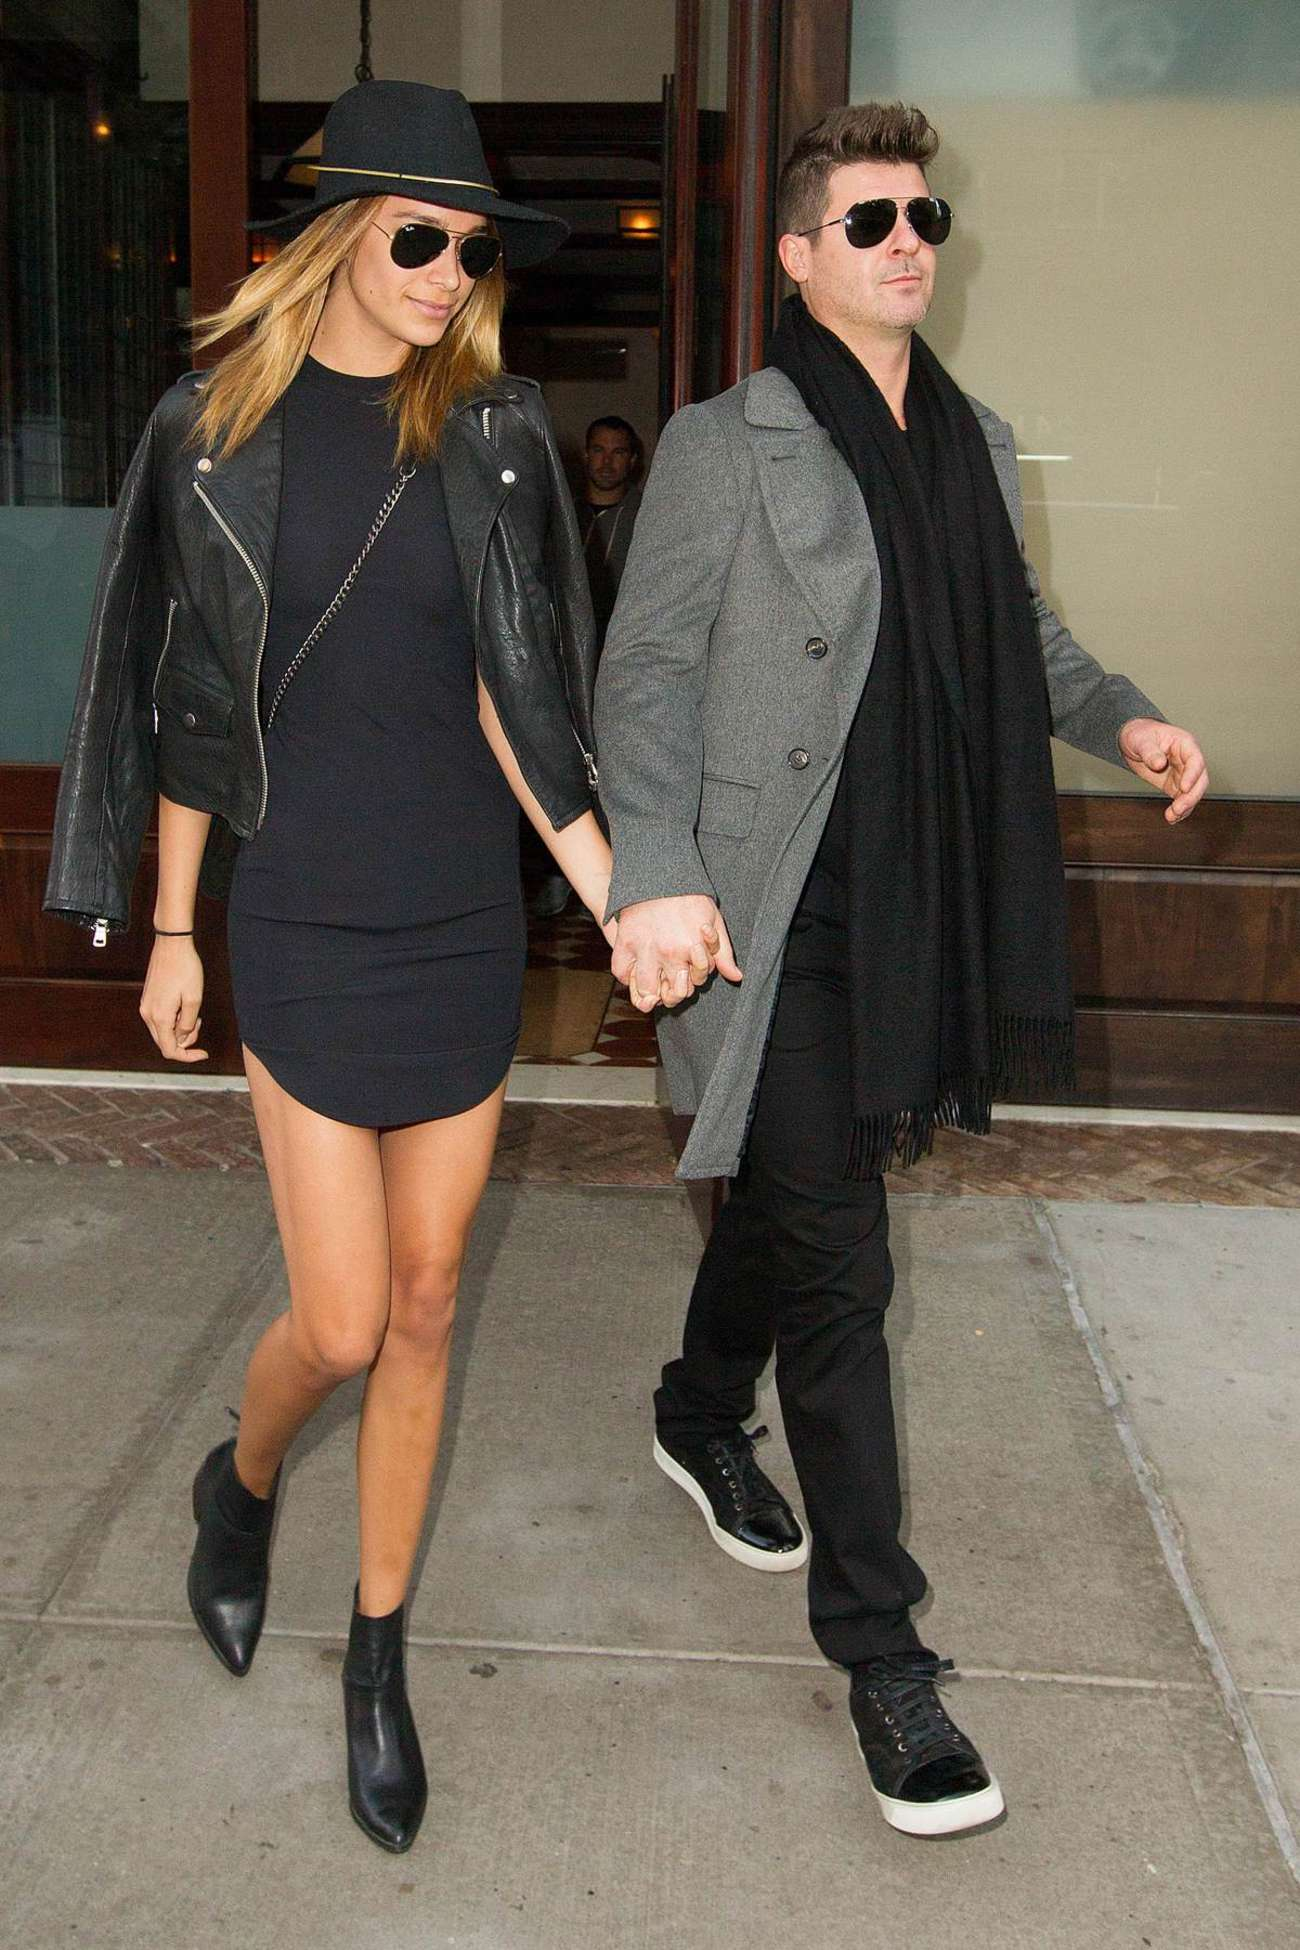 April Love Geary and Robin Thicke Leaving Tribeca Hotel in New York